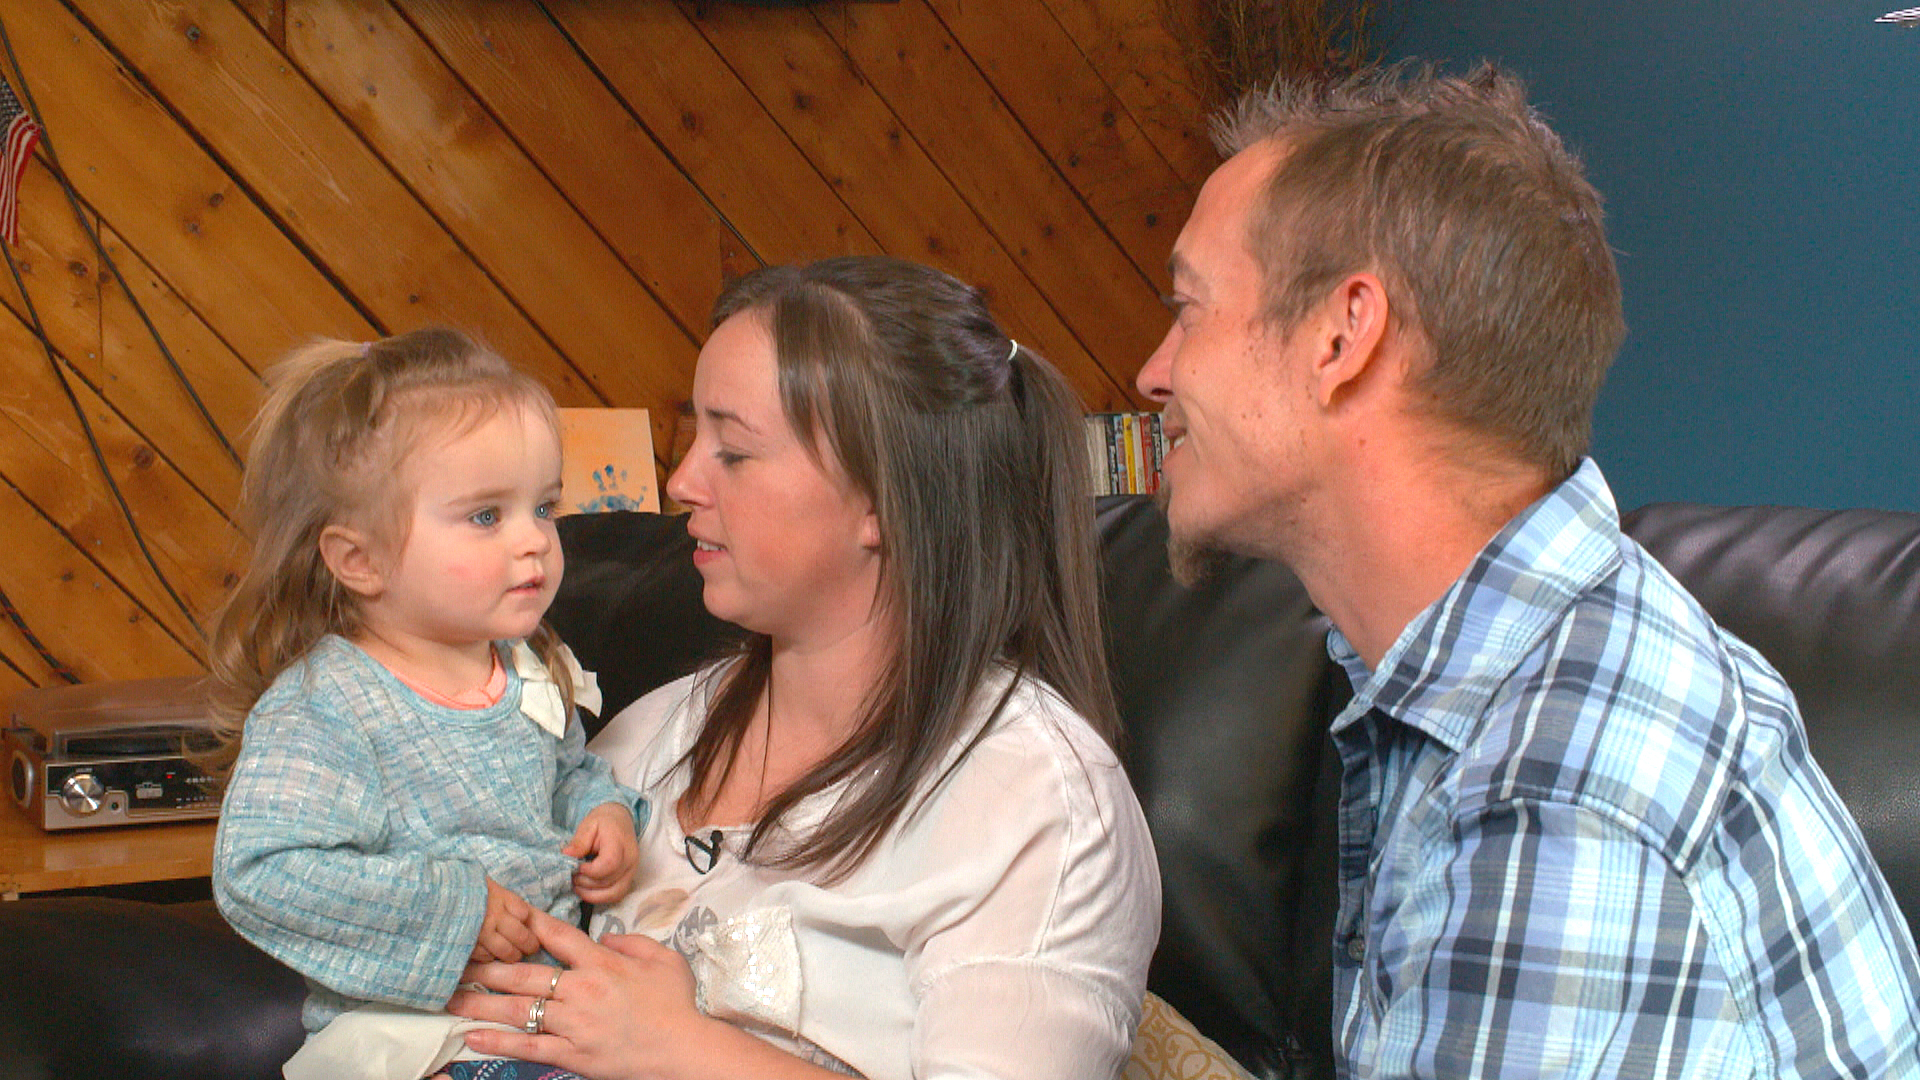 'Helpless': The only treatment for their baby's seizures was illegal